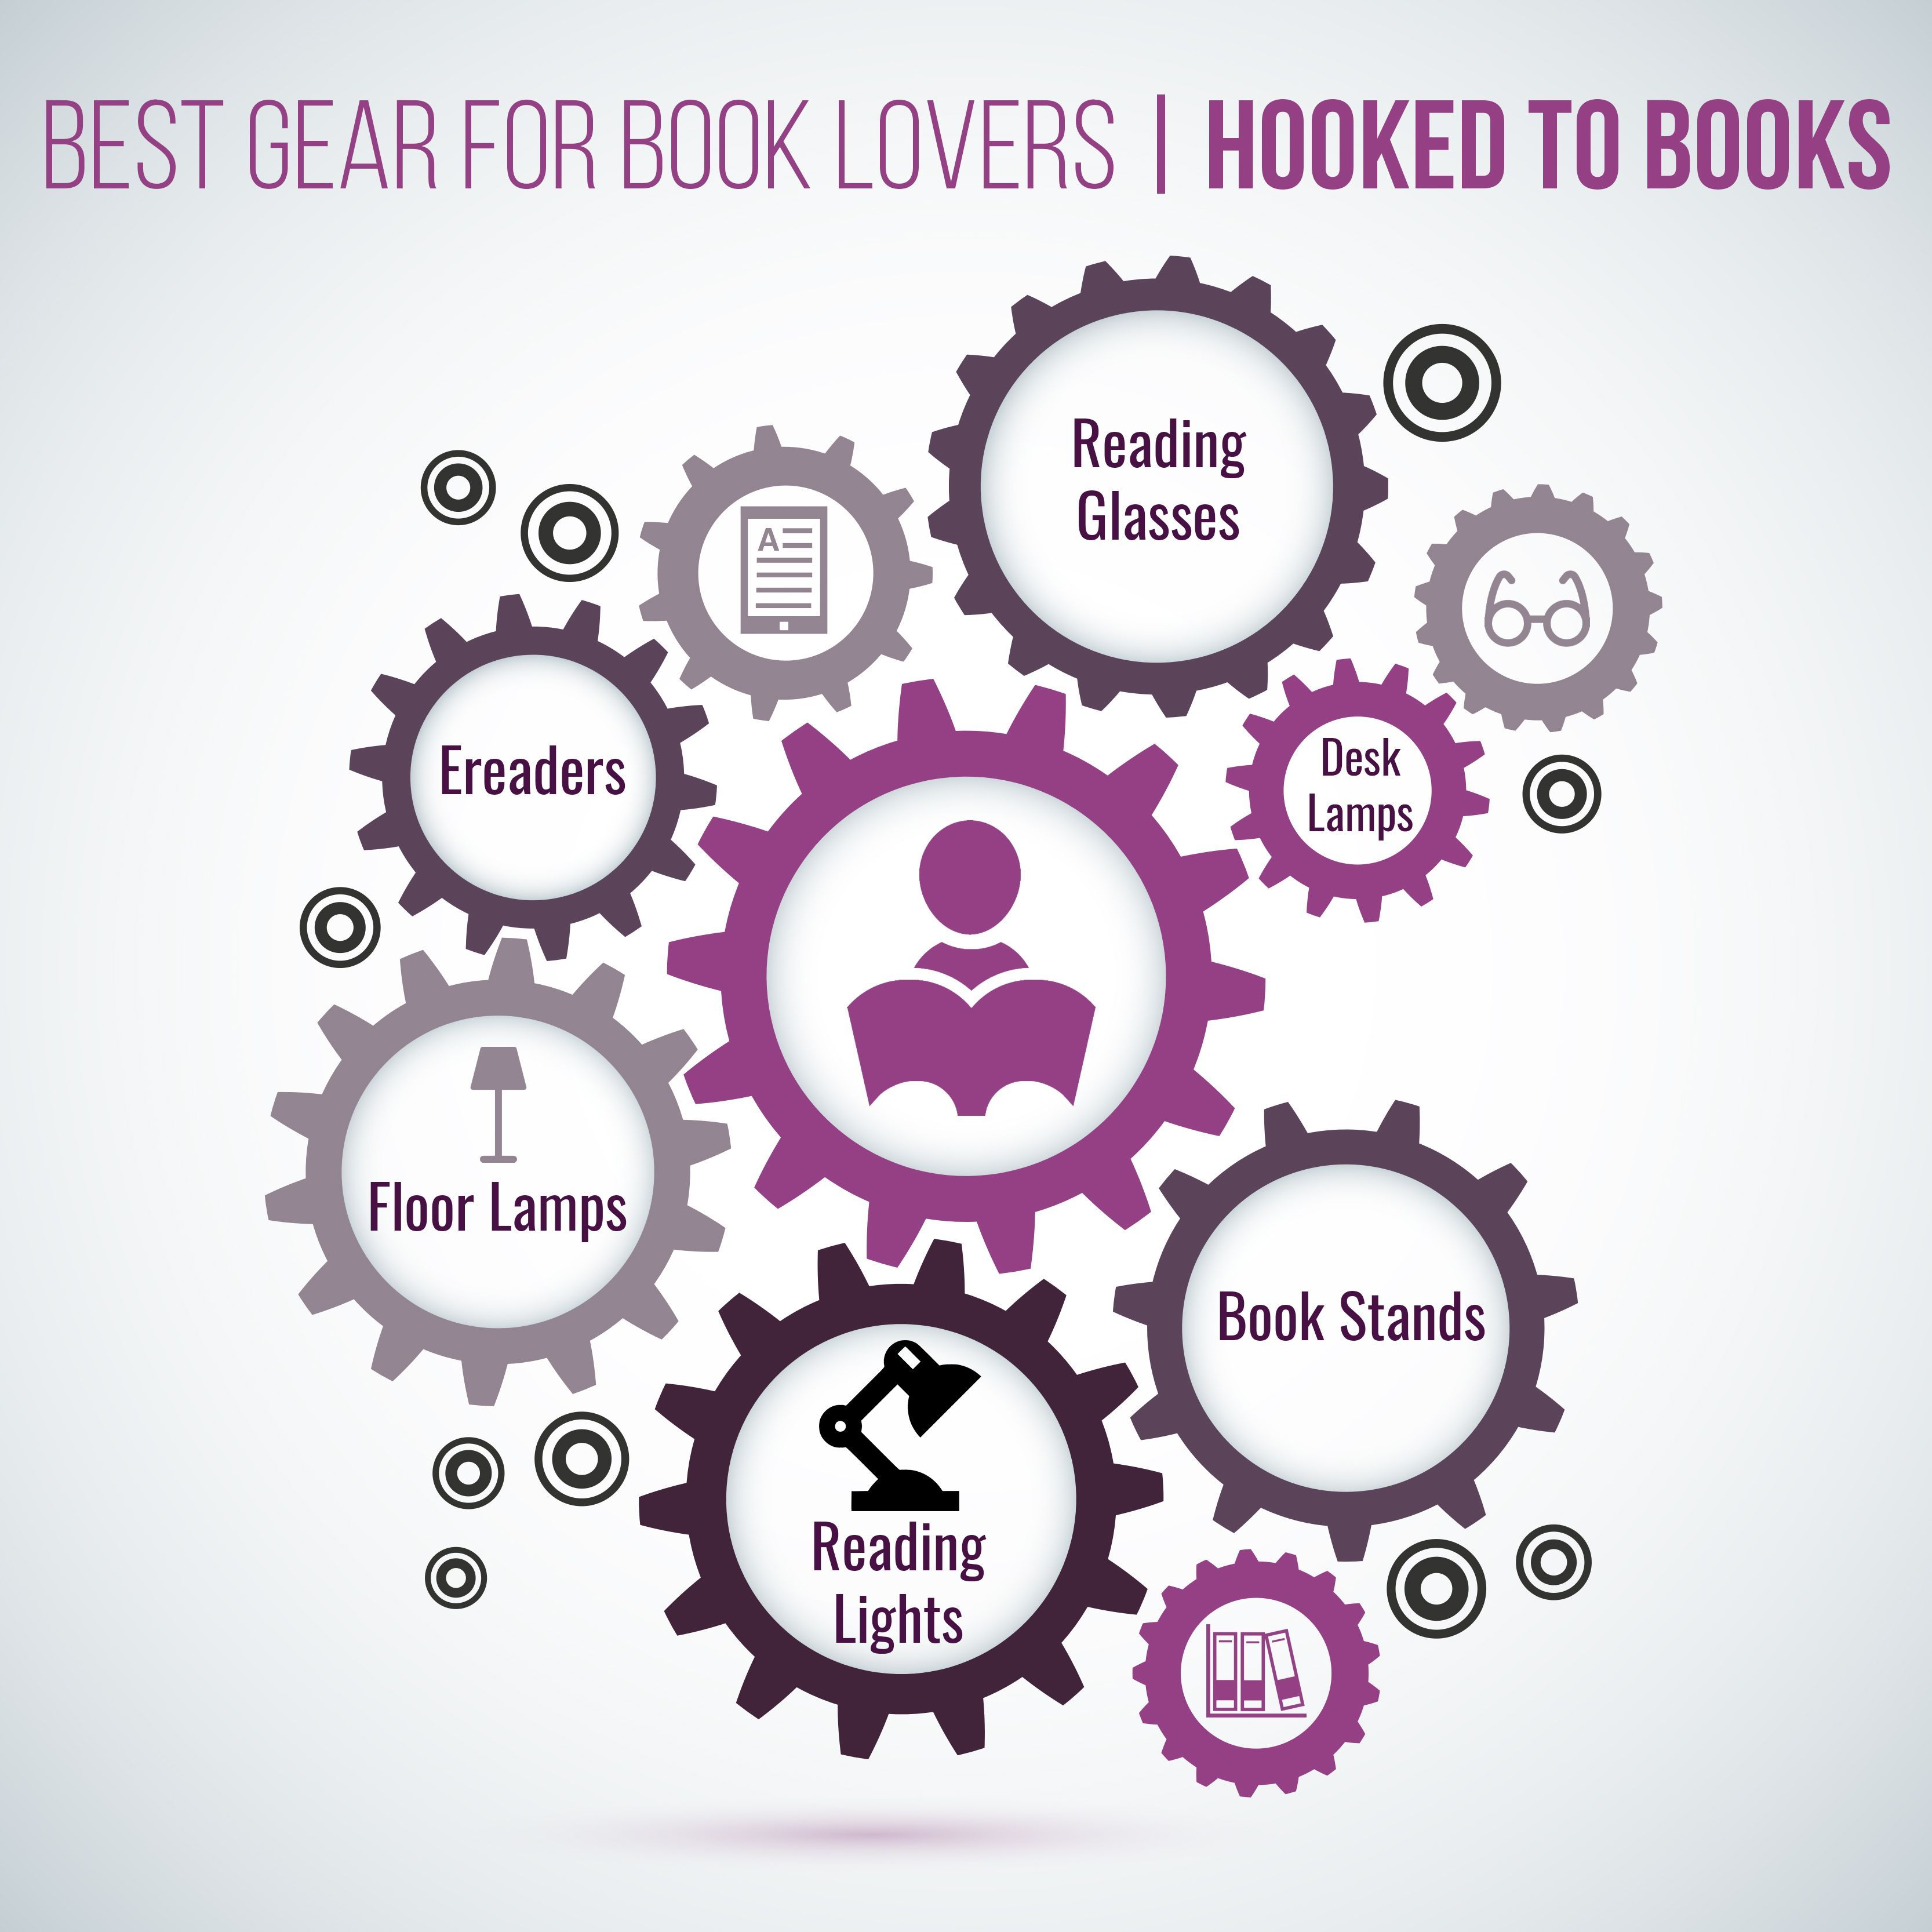 Gear Up Book Lovers Time To Level Up Your Reading Game Come See Our Reviews Of The Best Book Reading Gadgets And Gear That Money Ca Lampe Bois Bois Naturel